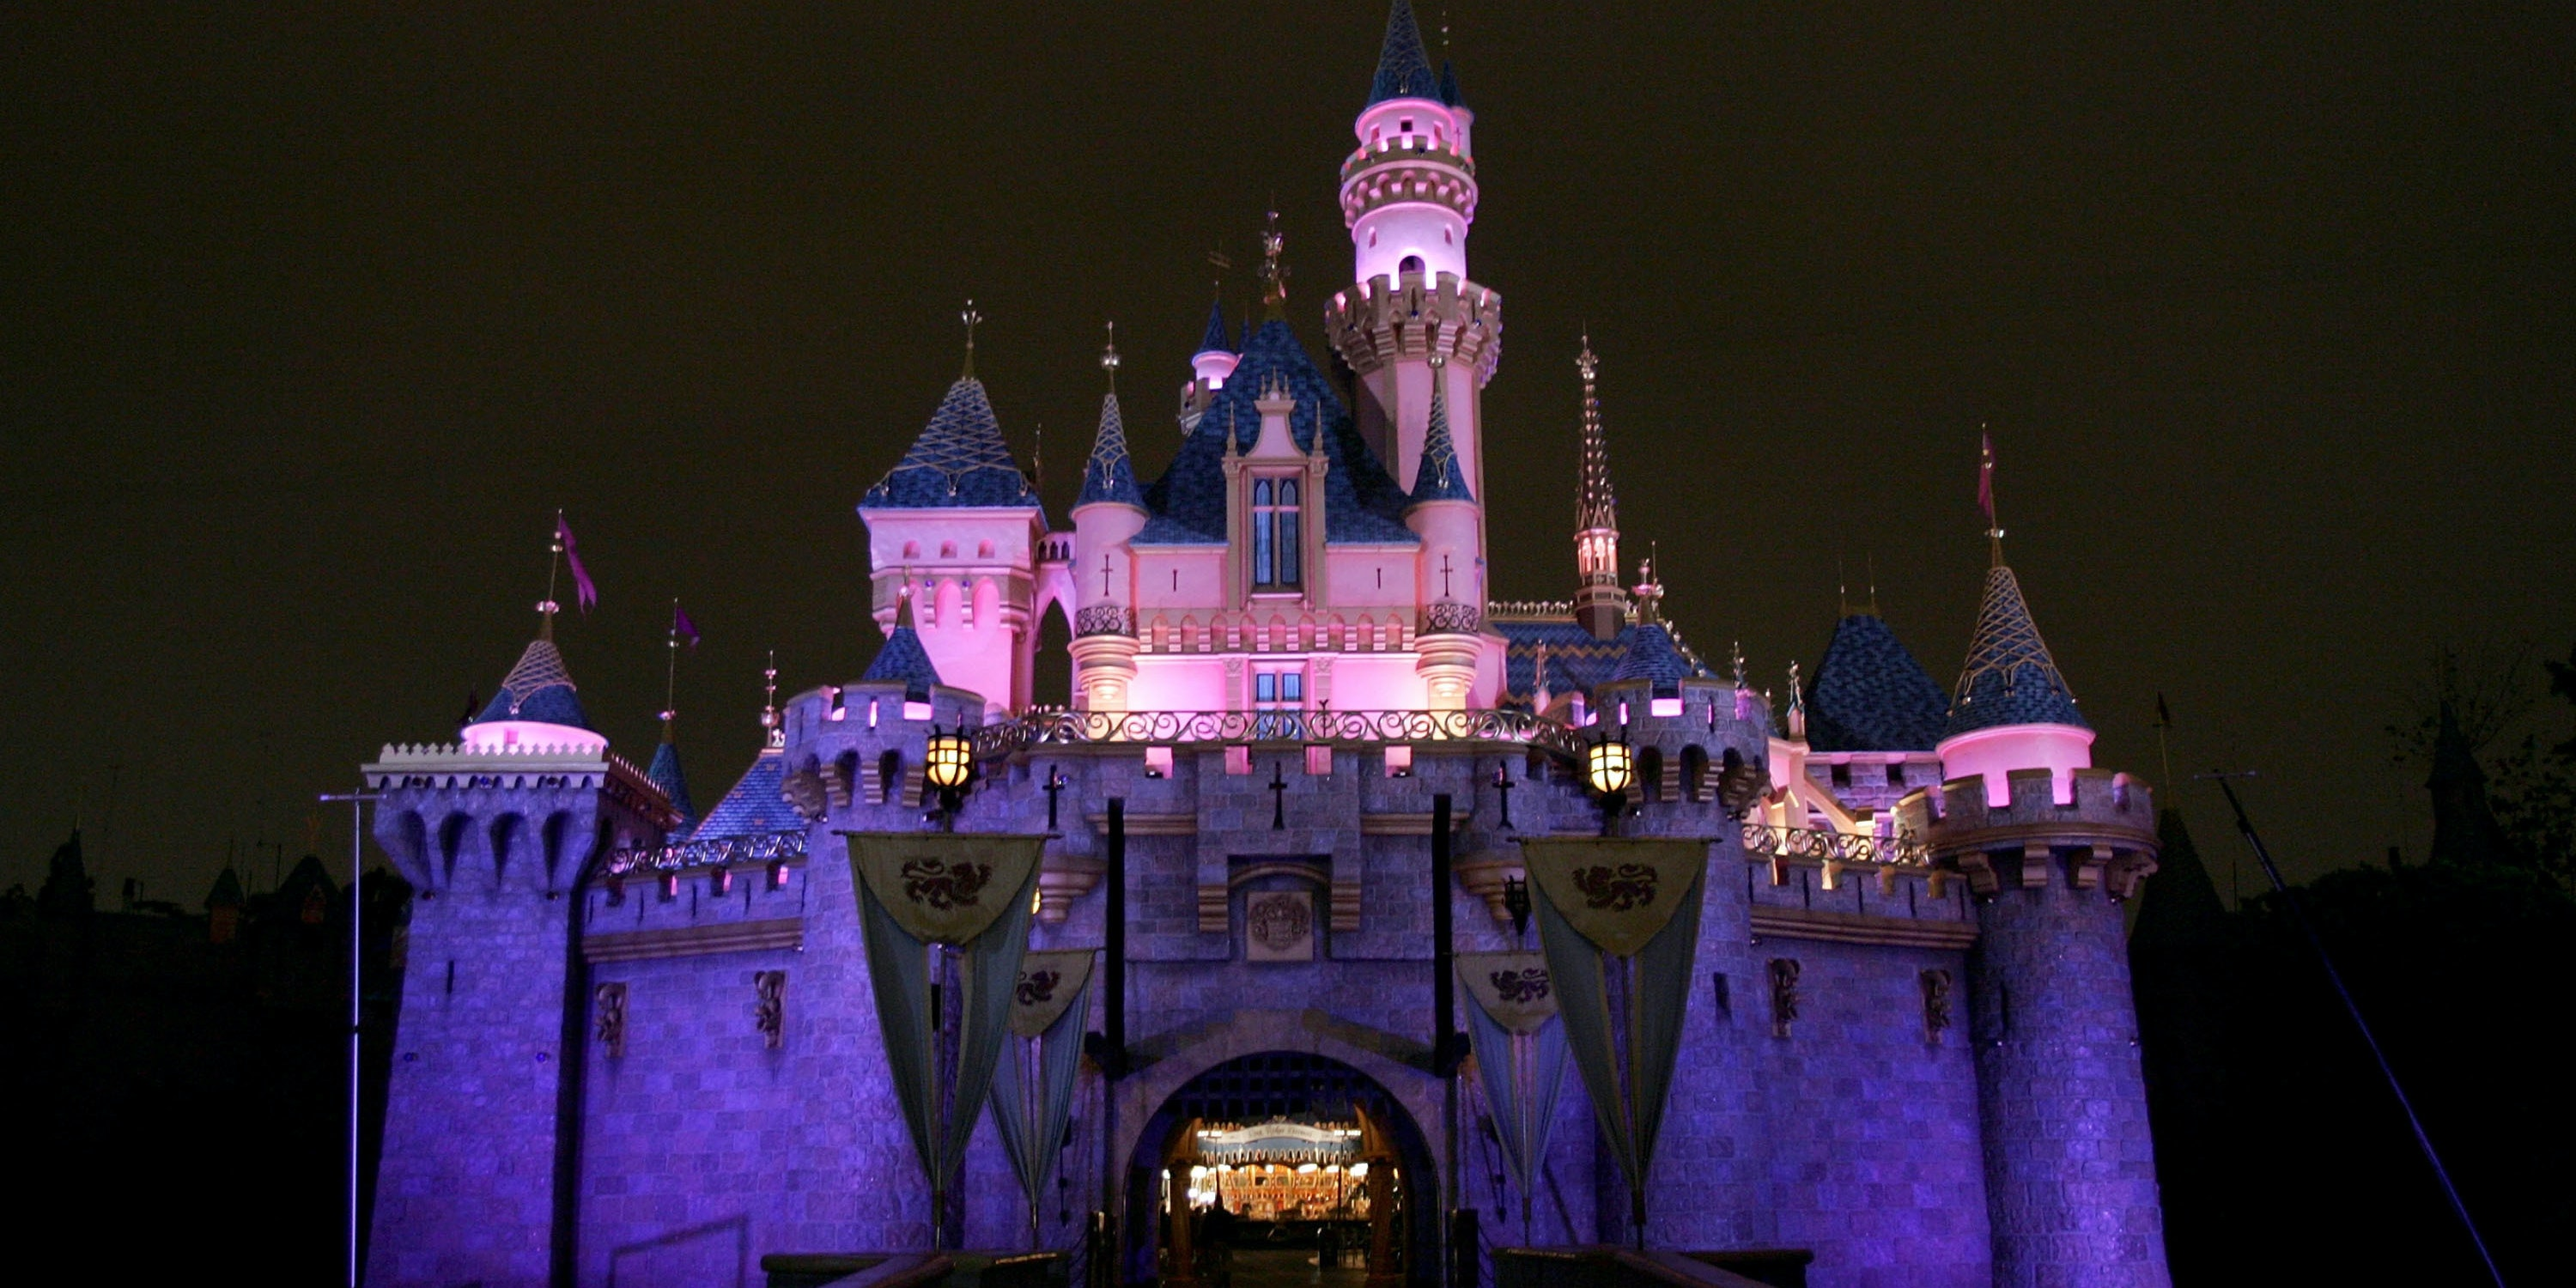 You Can Move to Disneyland, But Disney Is Moving Too